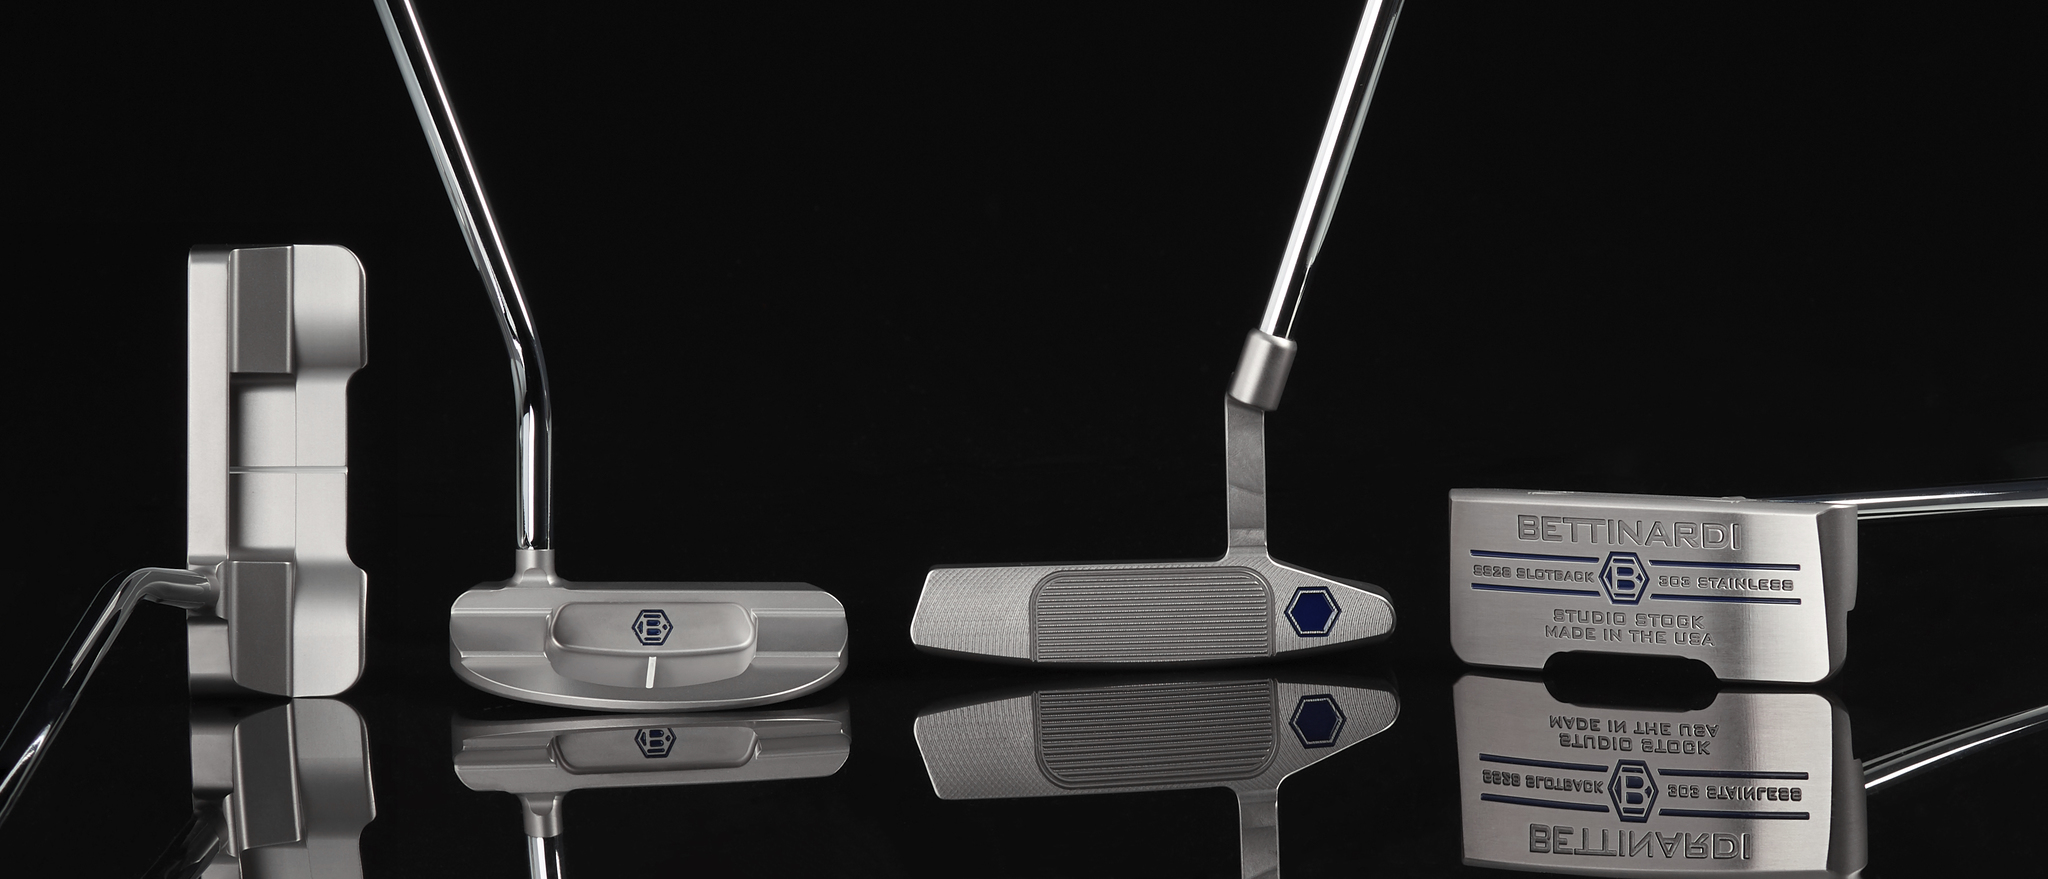 Bettinardi Putters—Studio Stock Series